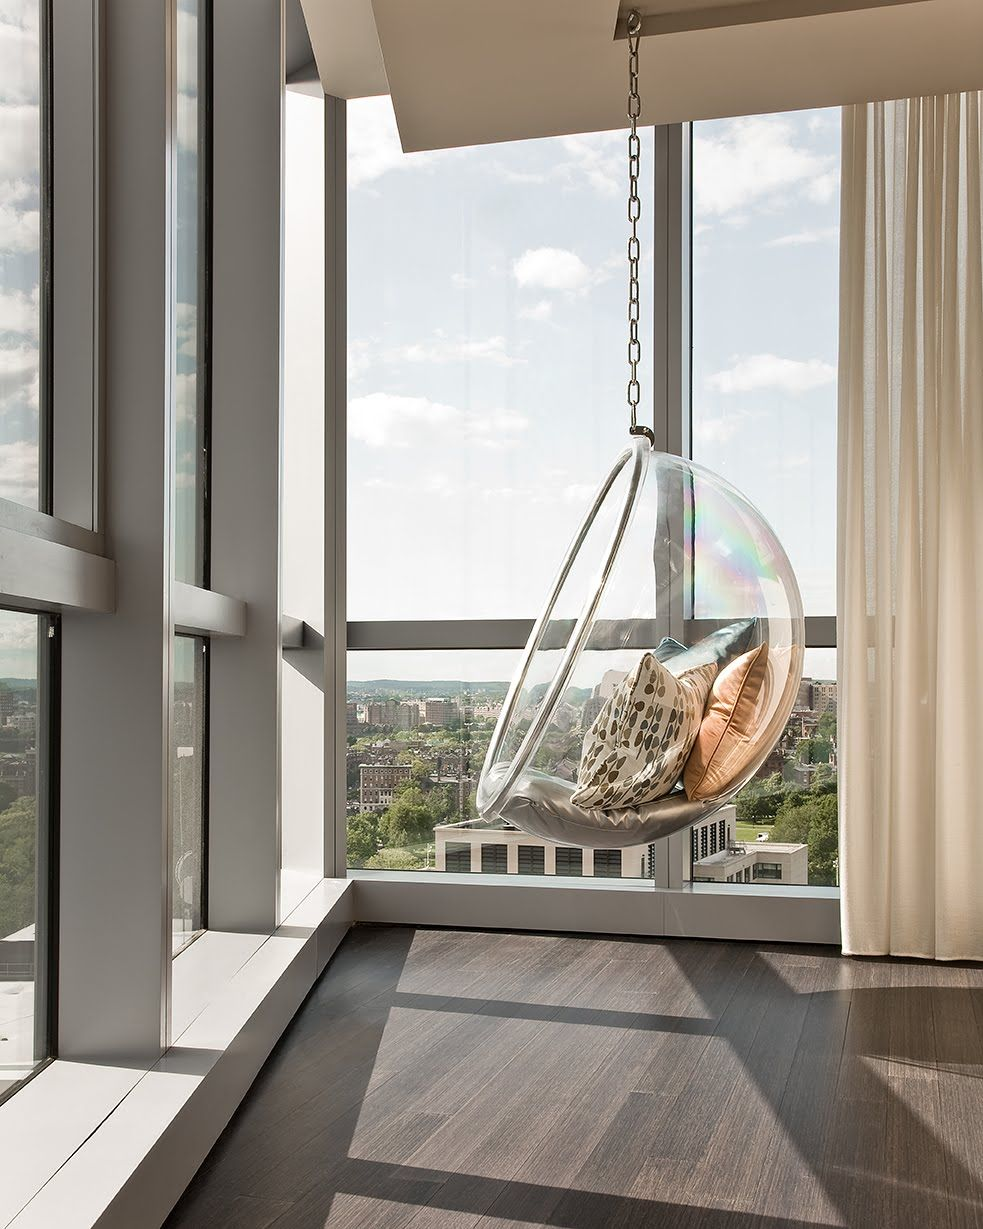 love it Indoor swing chair, Dream decor, Bubble chair